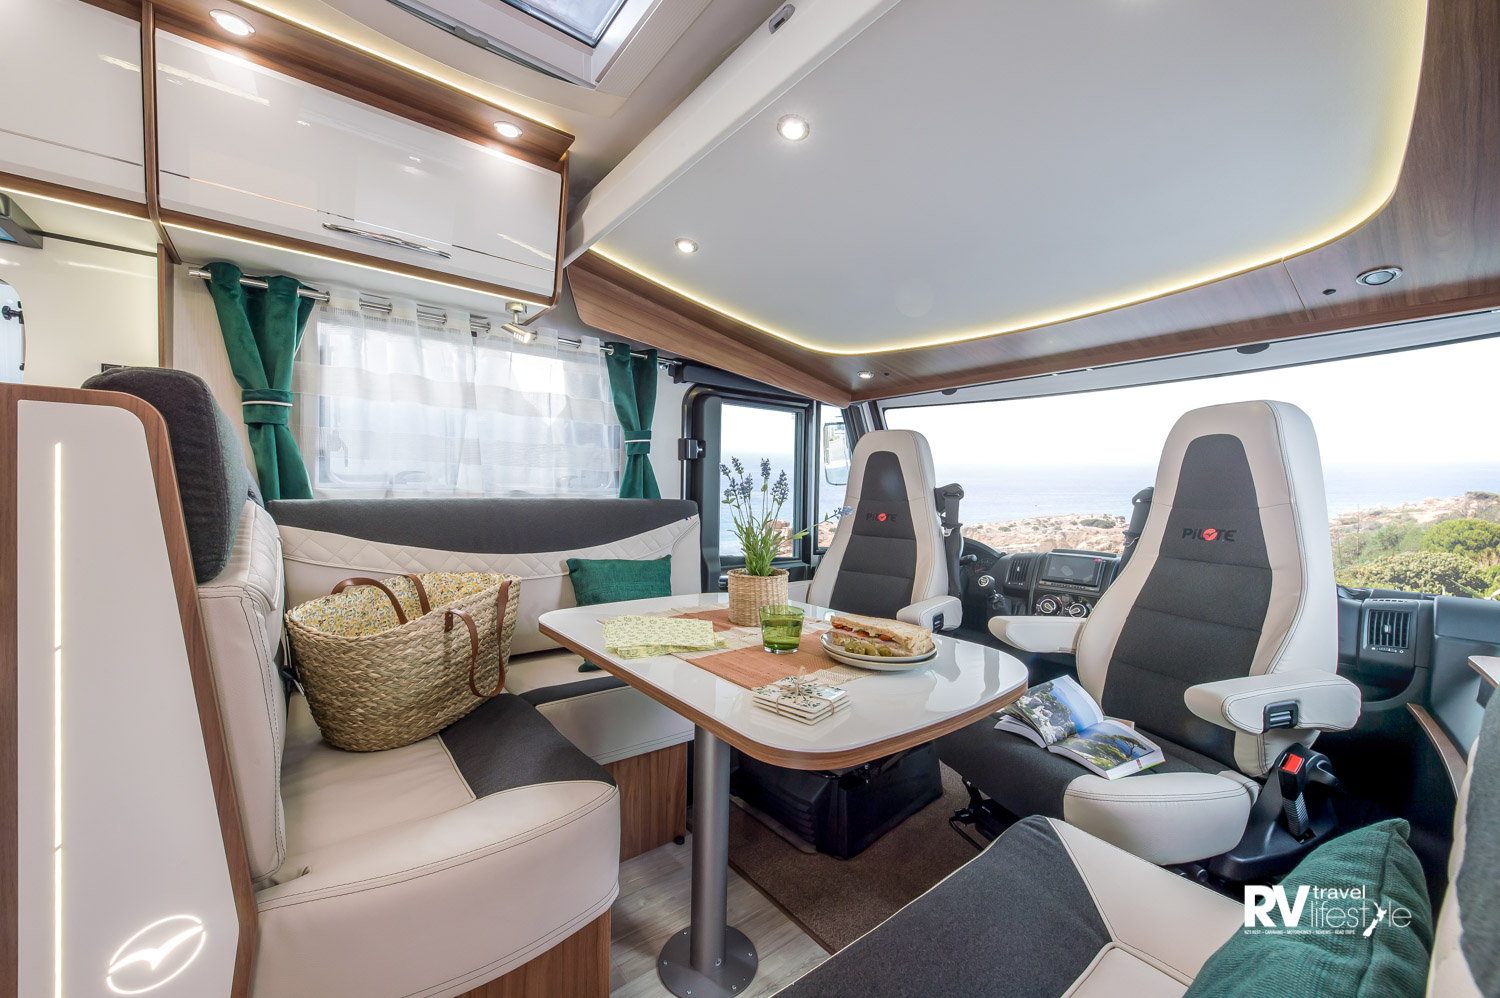 A spacious lounge/dining area - second berth comes down from the cab ceiling, light interior finishes